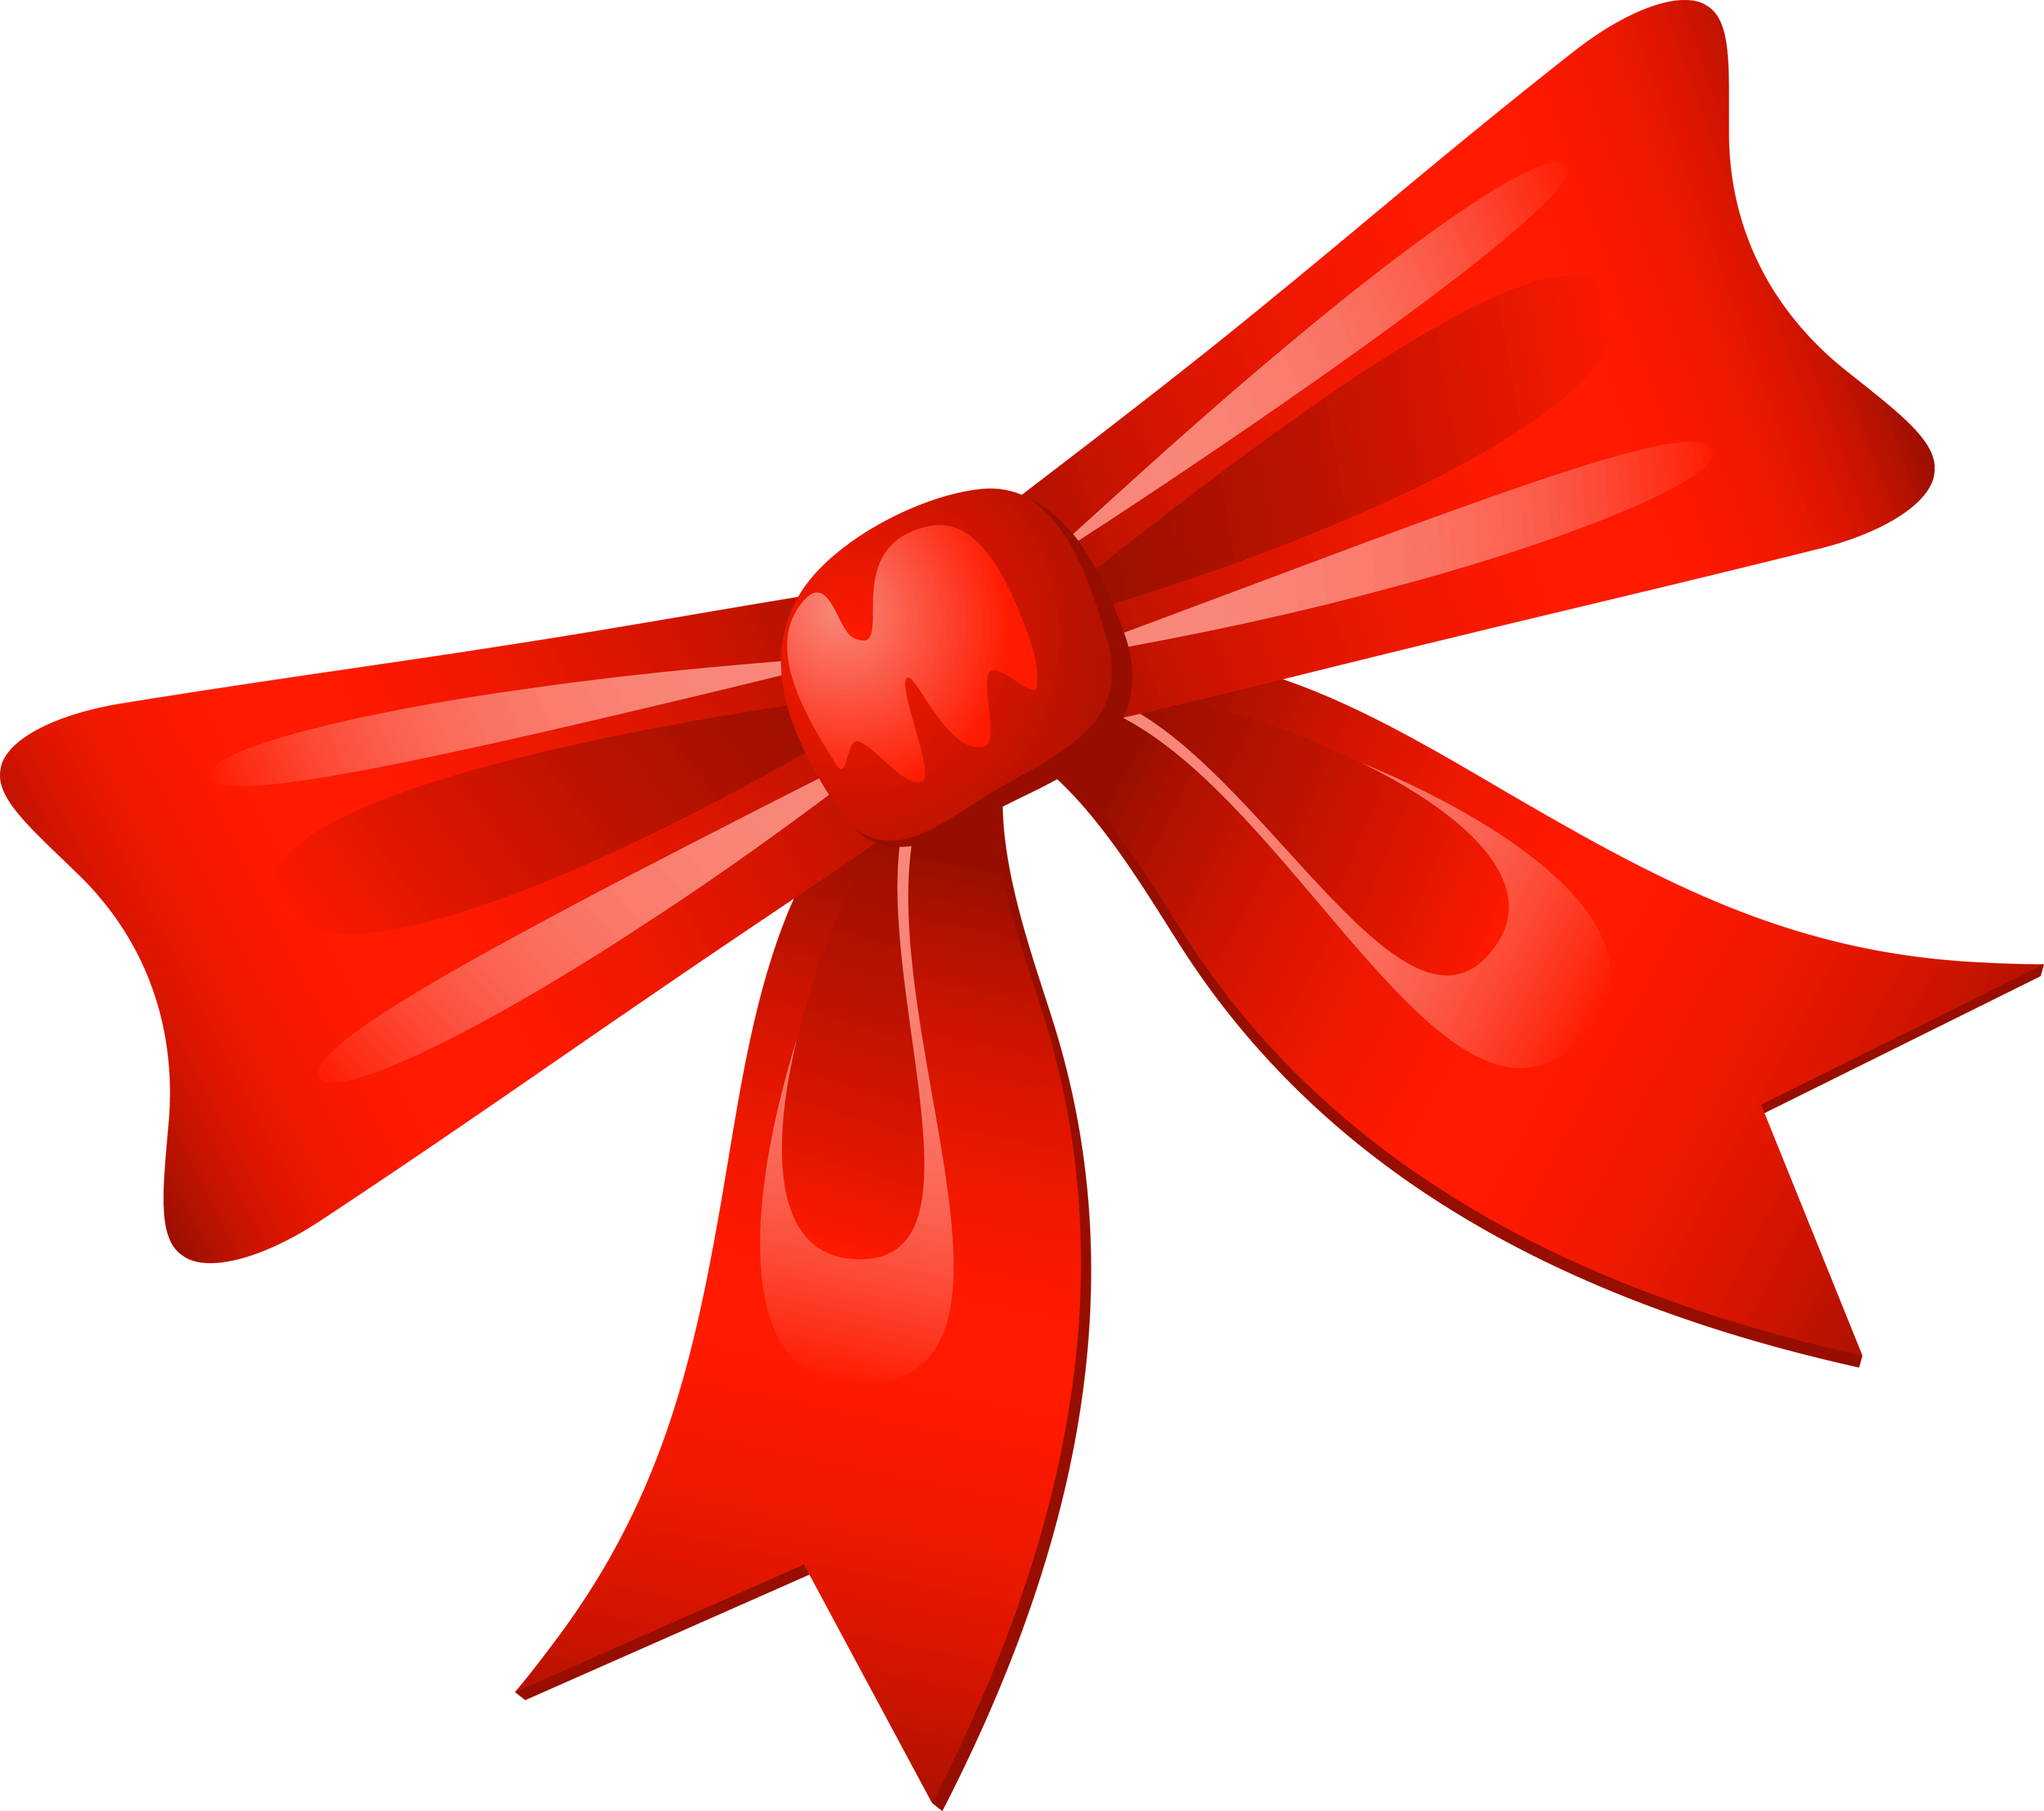 Red Christmas Bow Clip Art N3 free image.